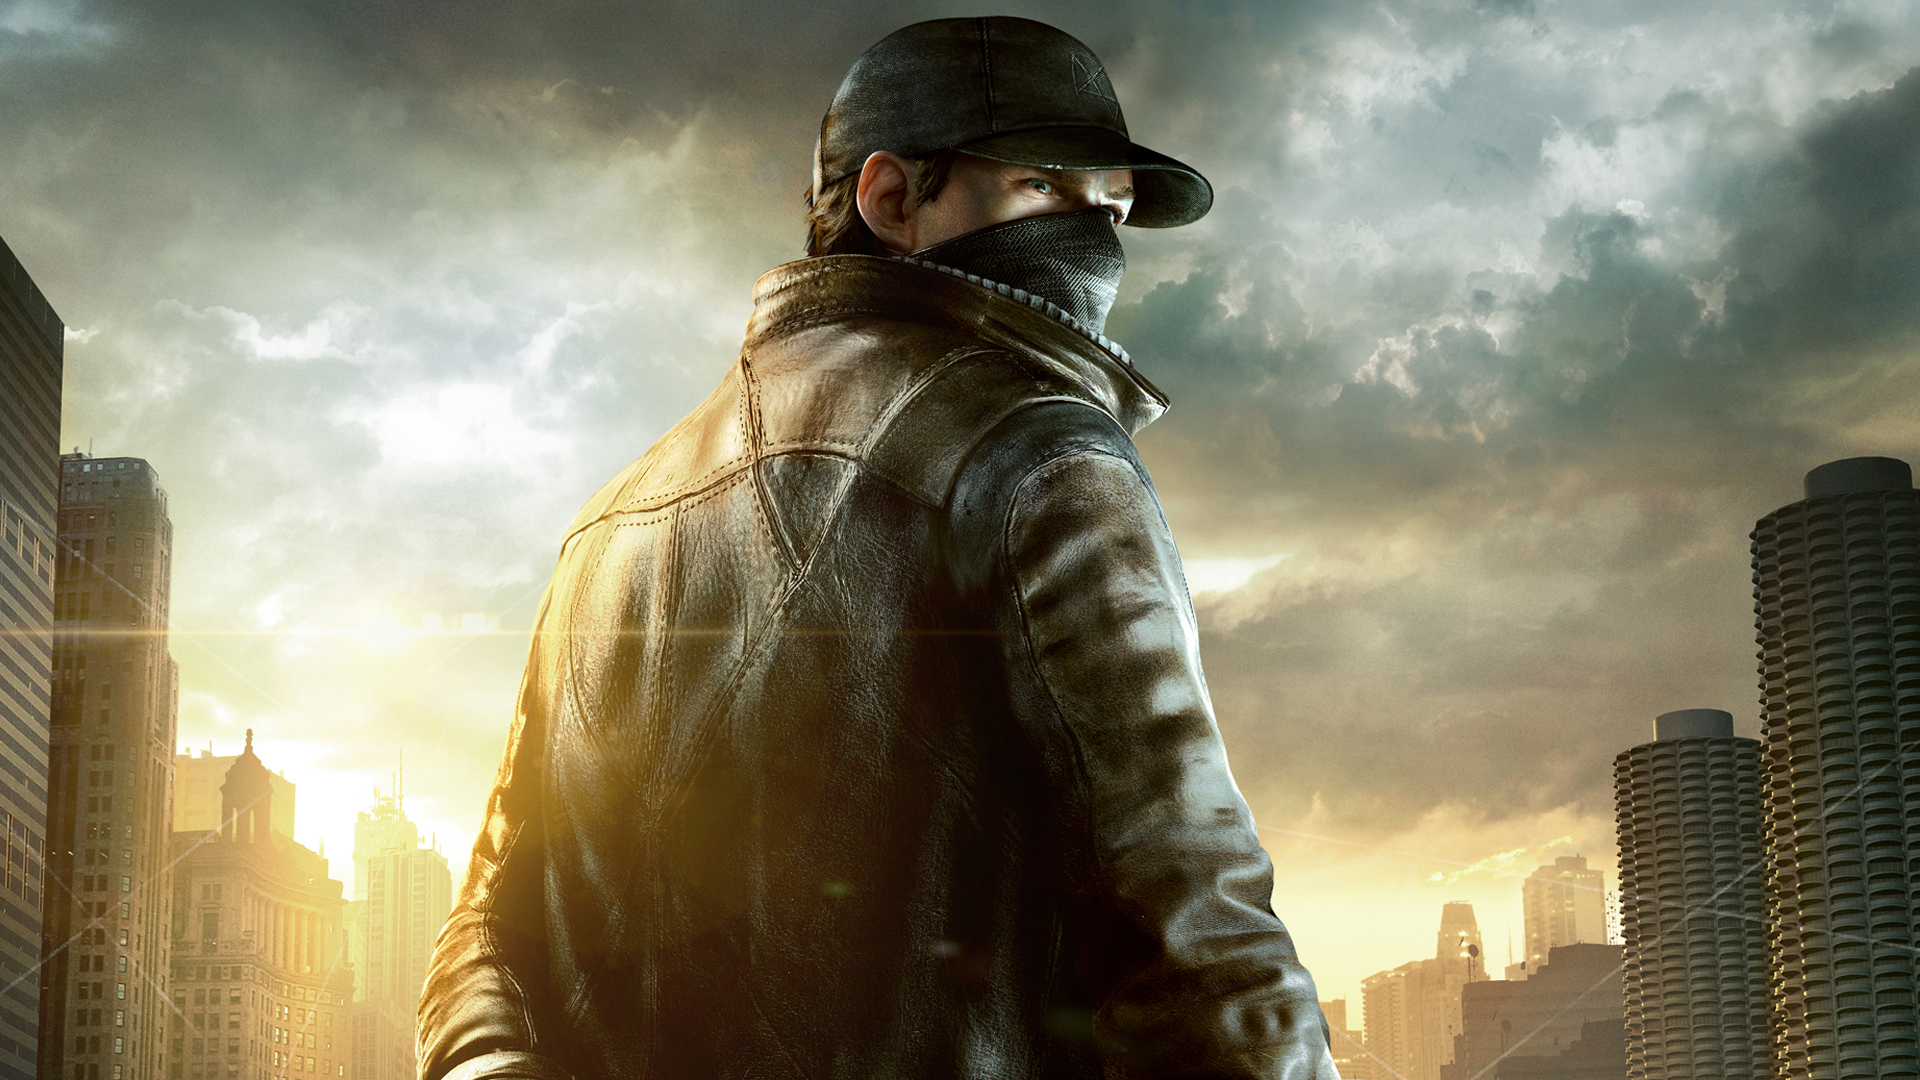 HD Wallpapers Aiden Pearce